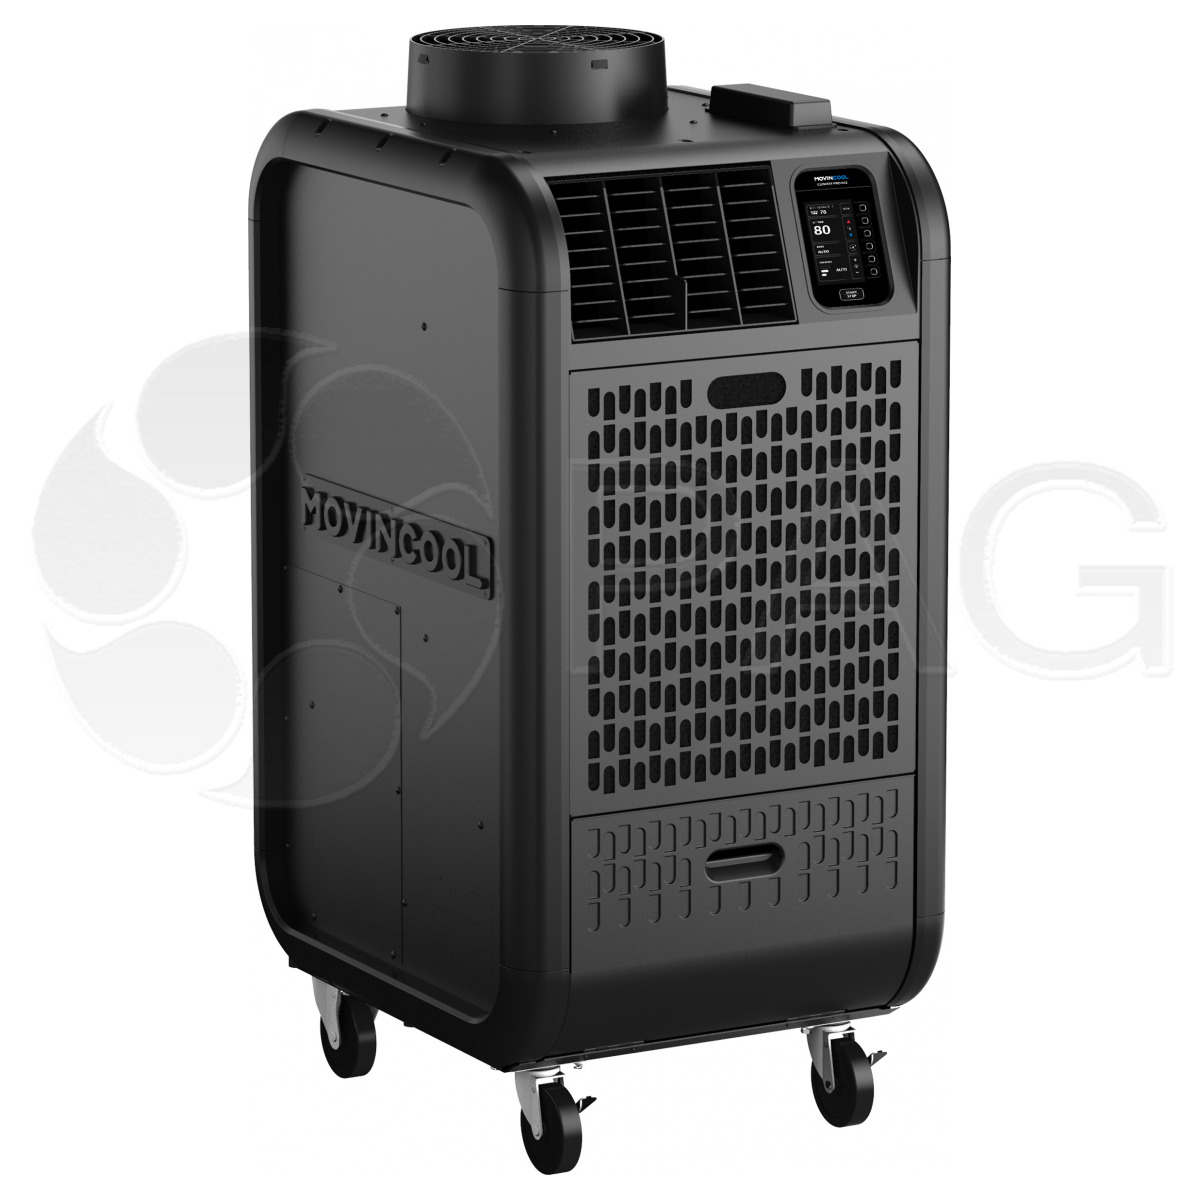 MovinCool-Climate-Pro-D12 industrial spot cooler